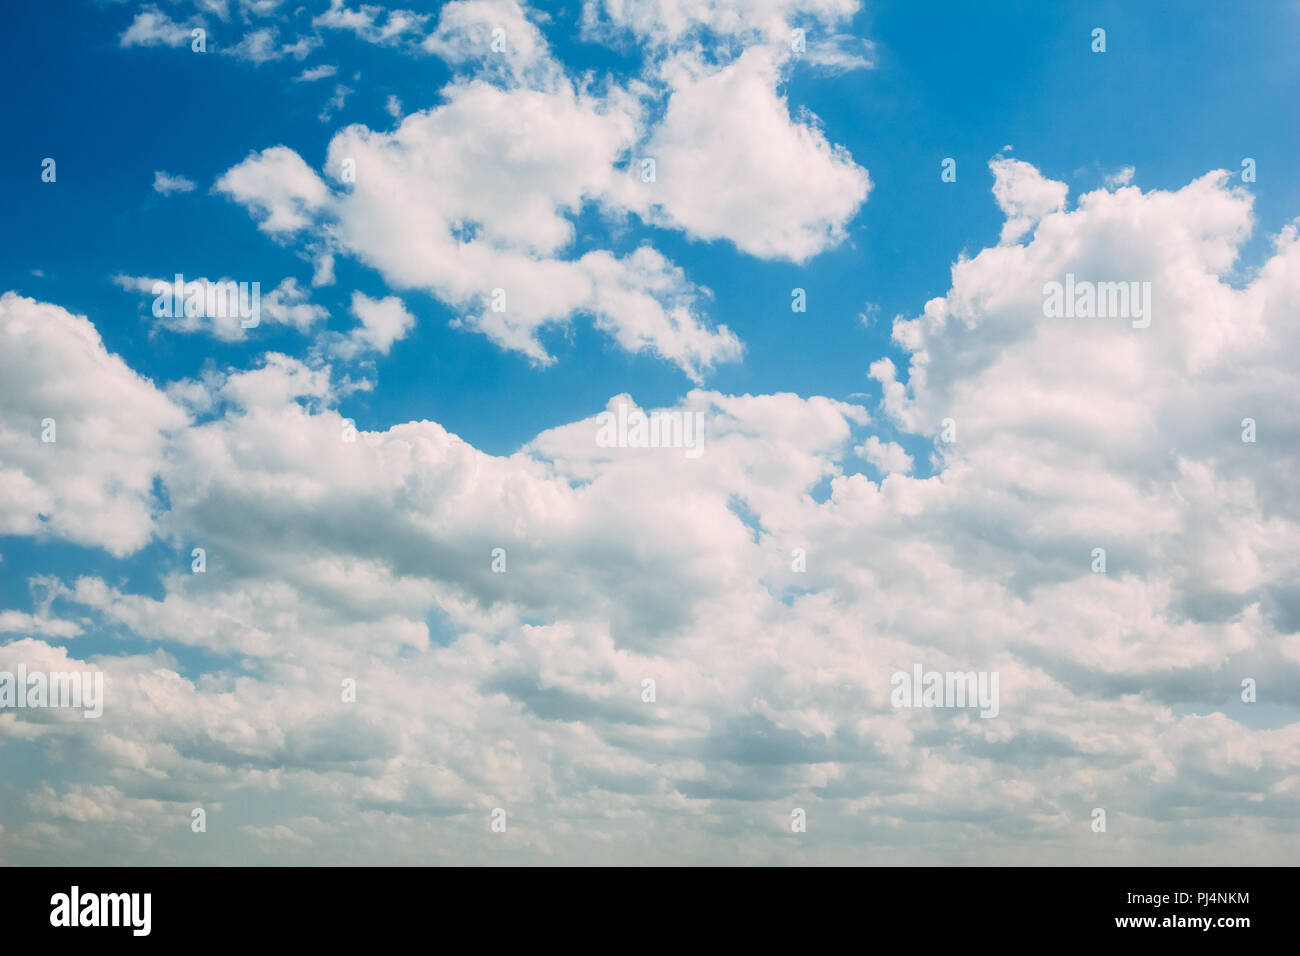 Cumulus white clouds on a blue summer sky background - Stock Image